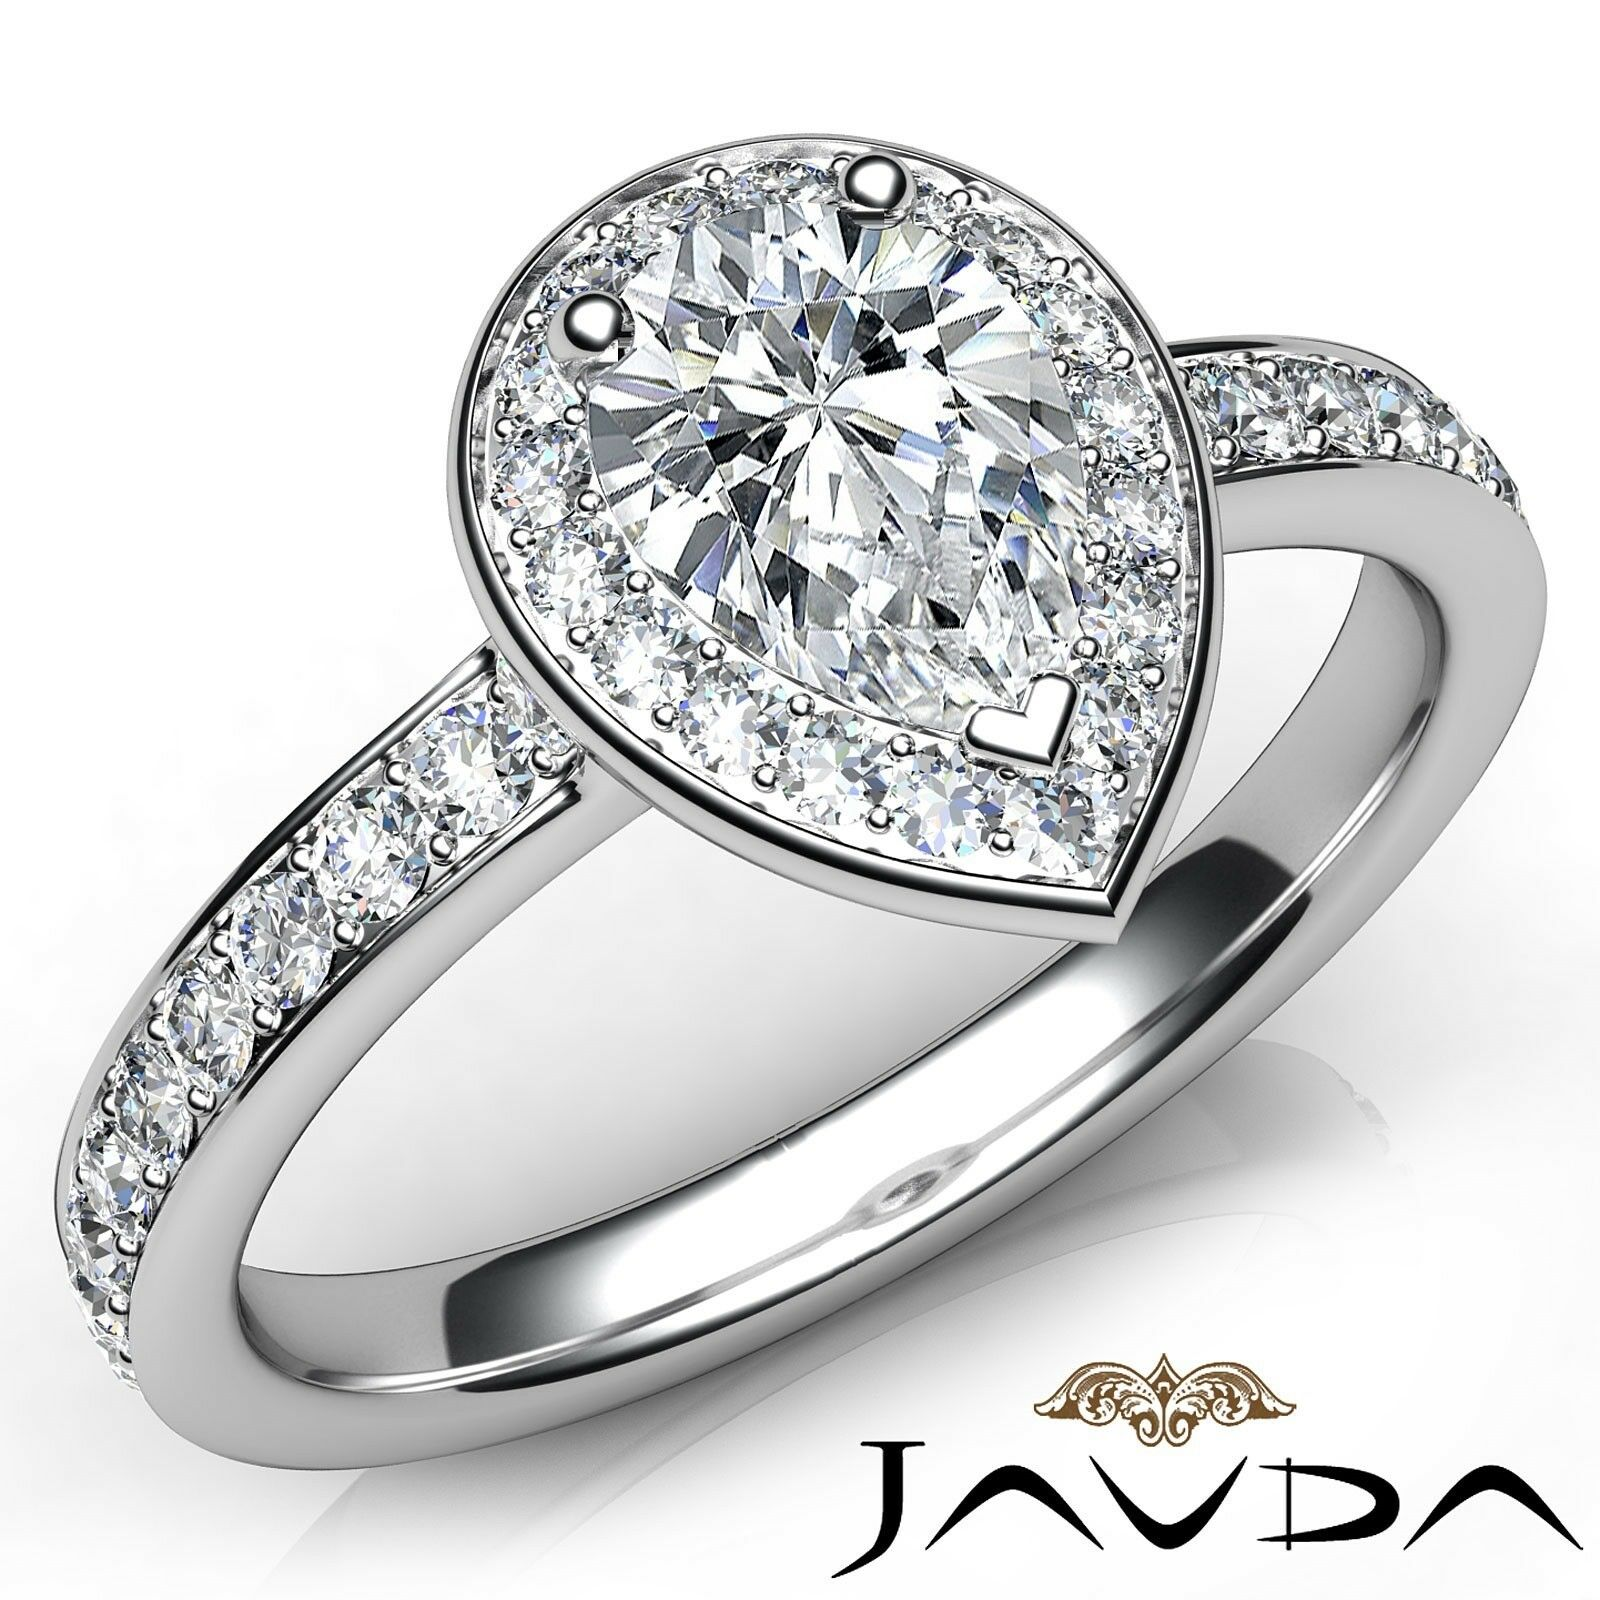 1.12ctw Halo Side-Stone Pave Set Pear Diamond Engagement Ring GIA H-SI1 W Gold